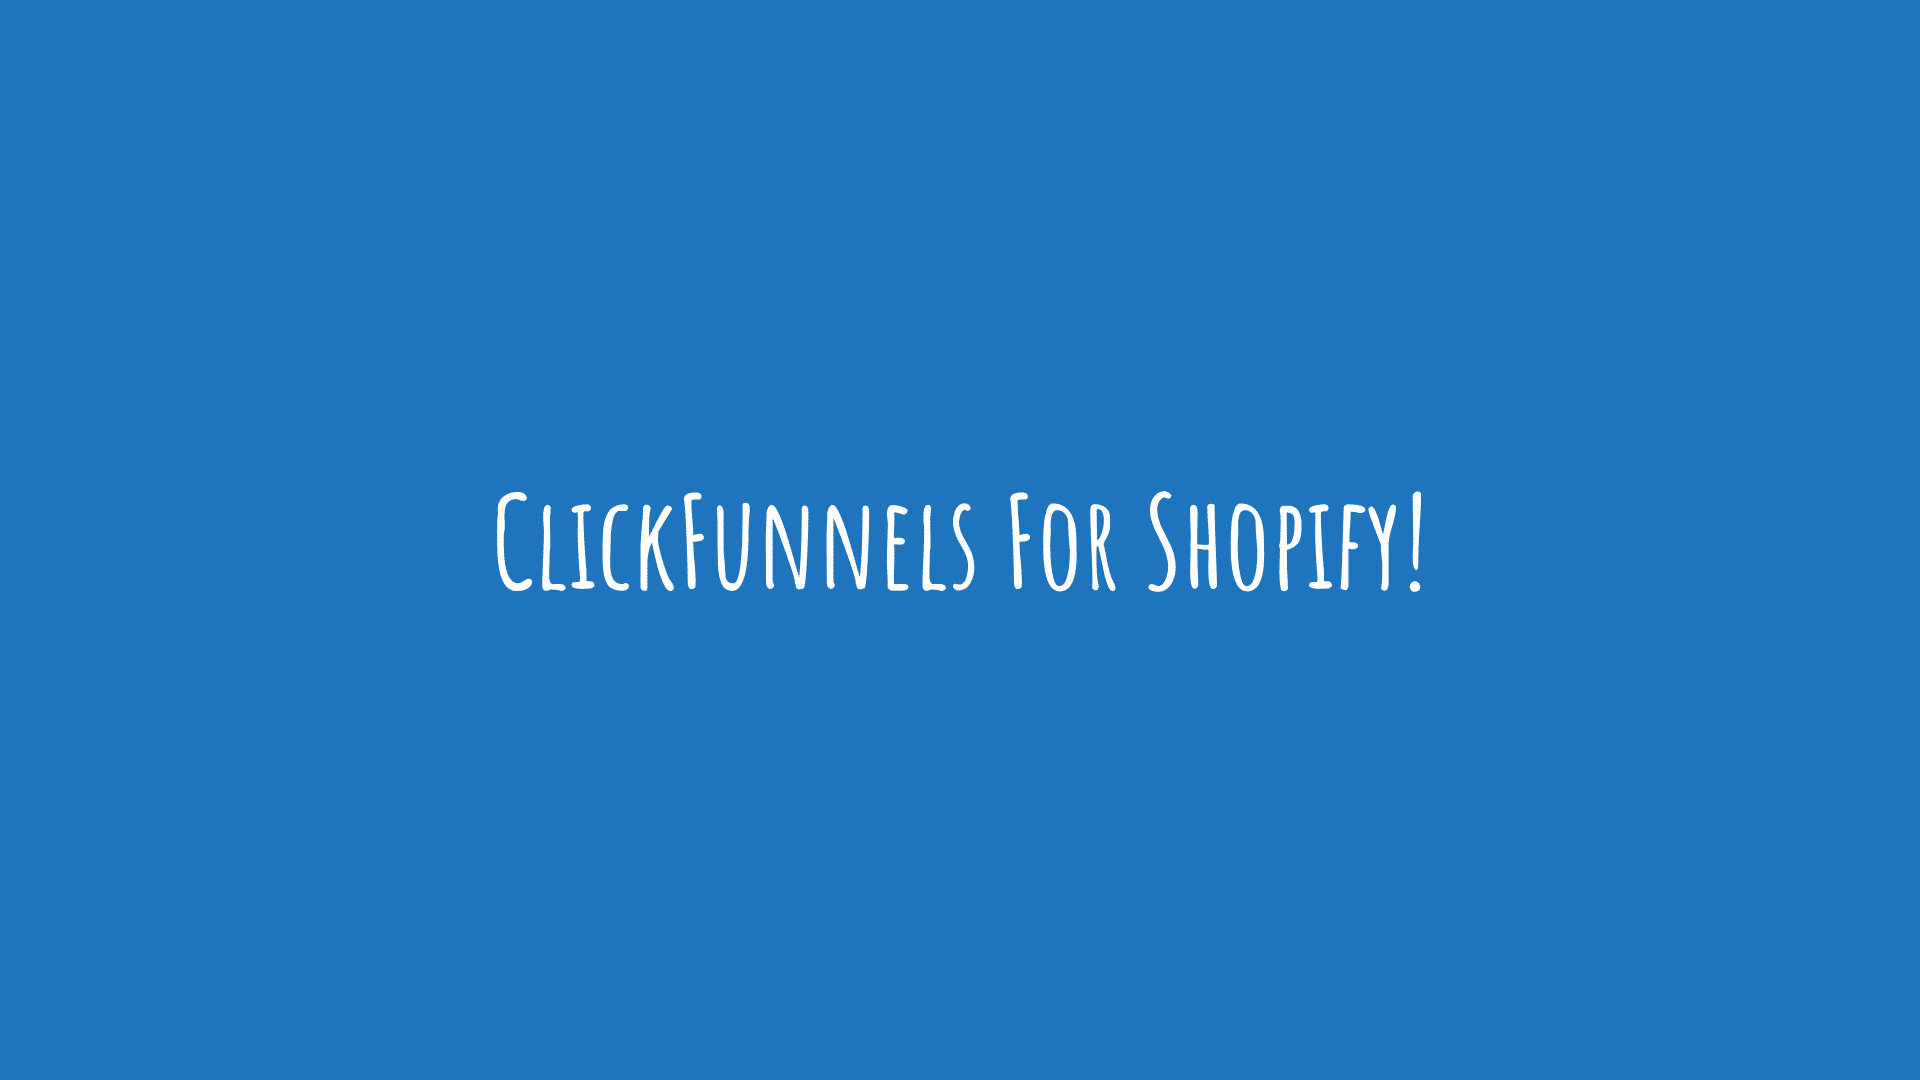 ClickFunnels For Shopify